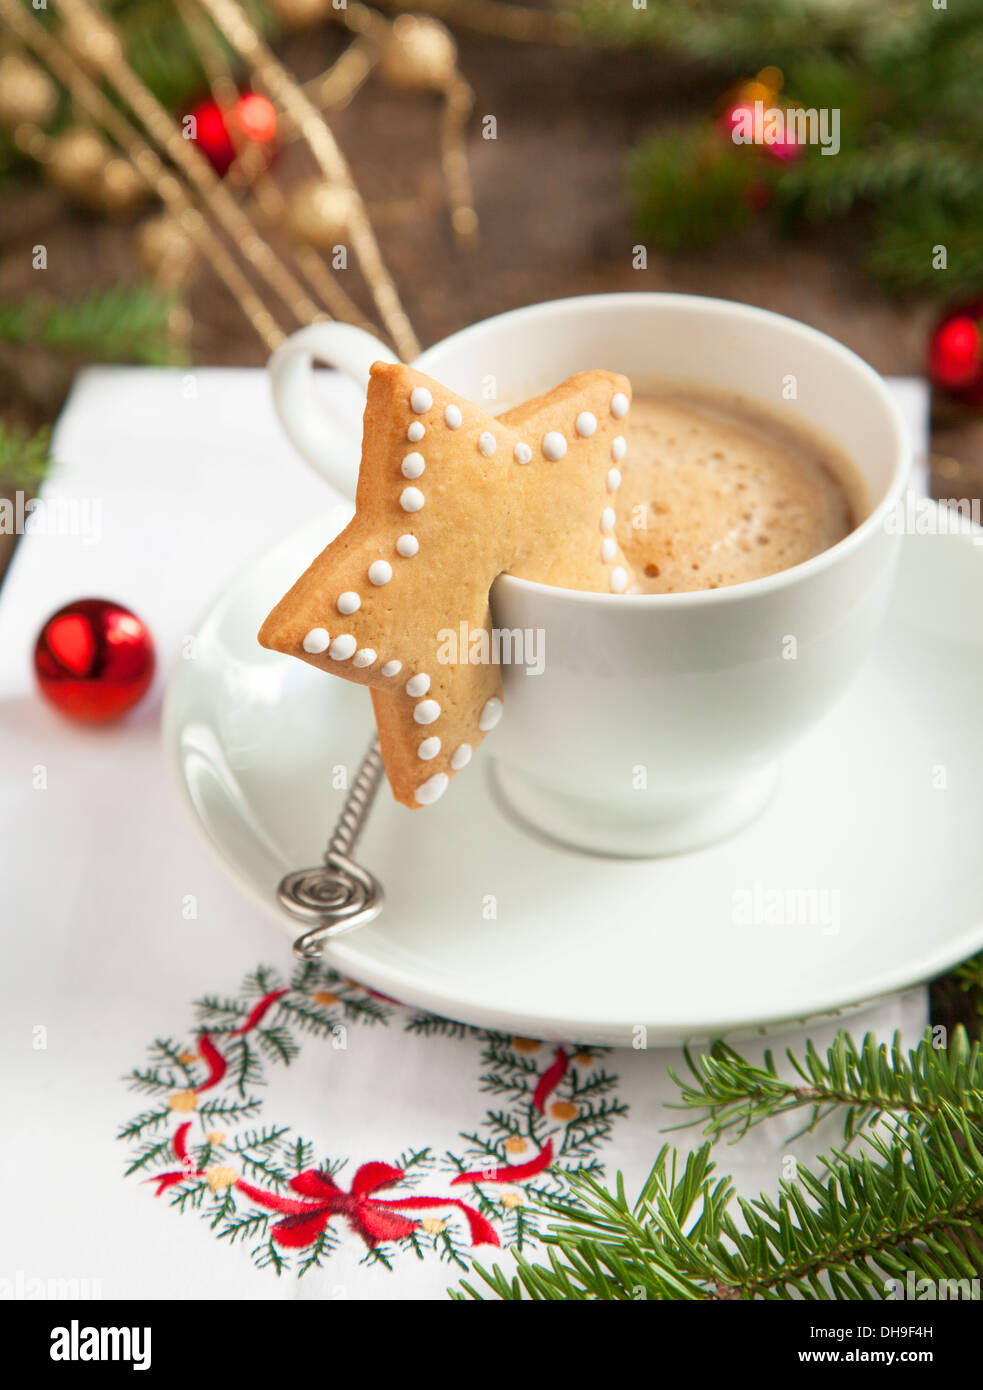 Cup Of Coffee And Christmas Sugar Cookies Stock Photo Alamy